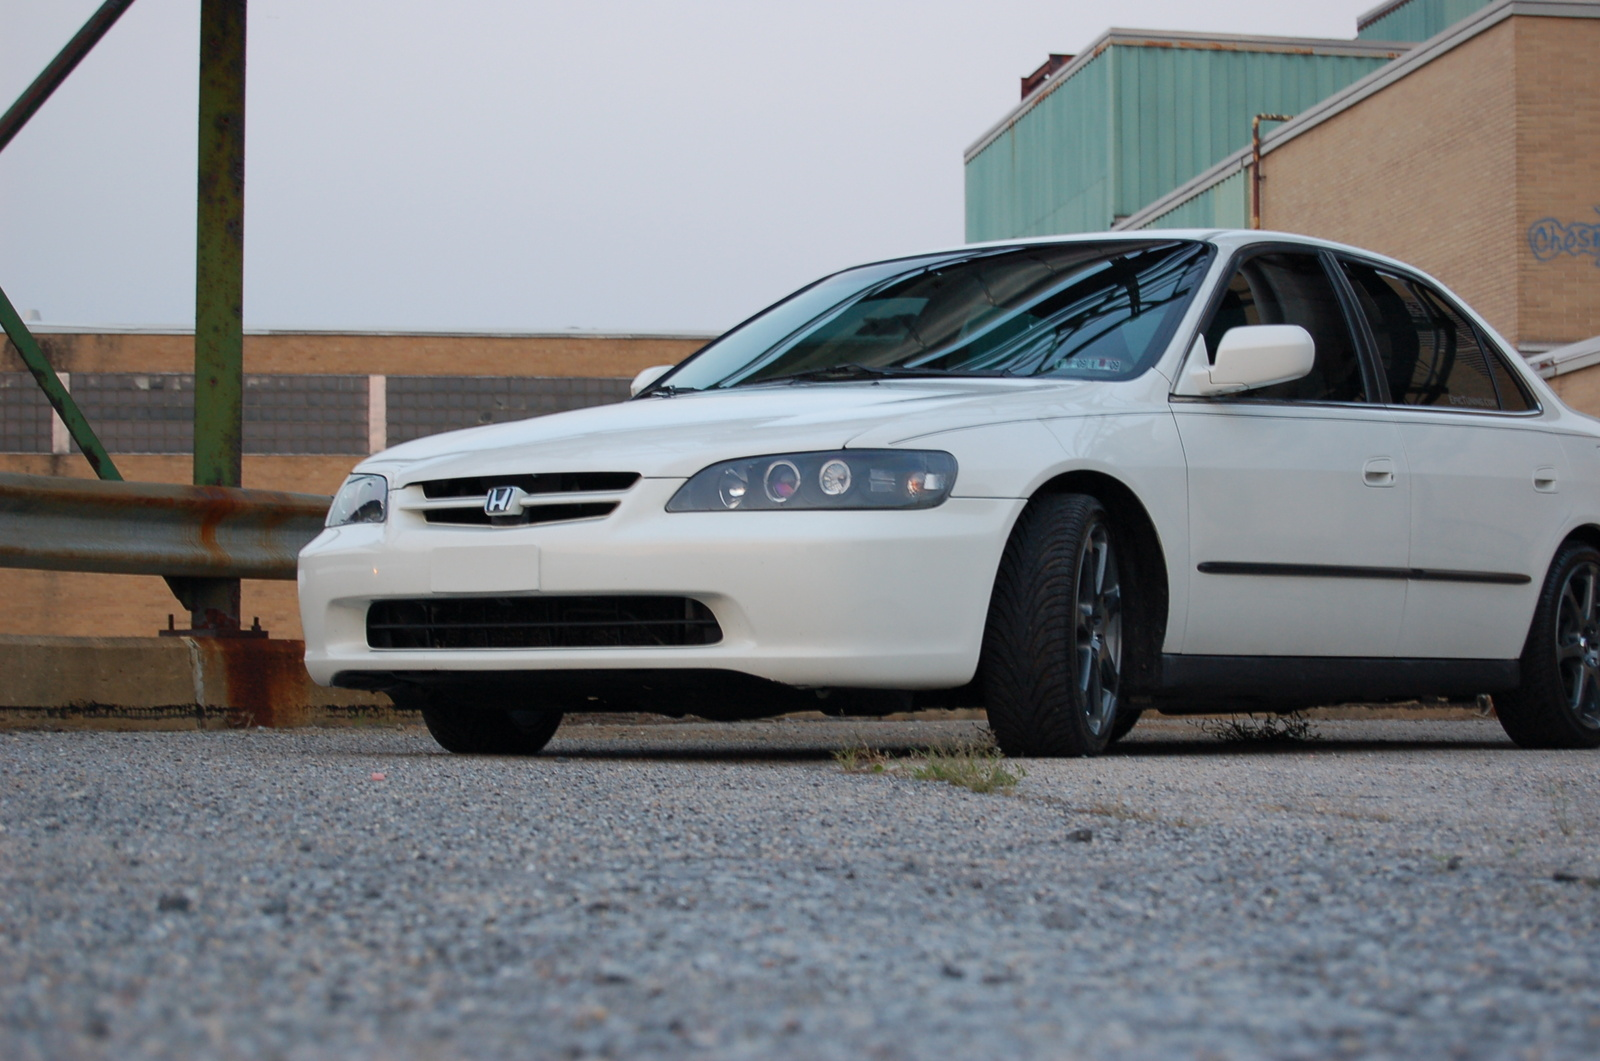 ... 2000 honda accord lx picture view garage tim2901 has driven this honda